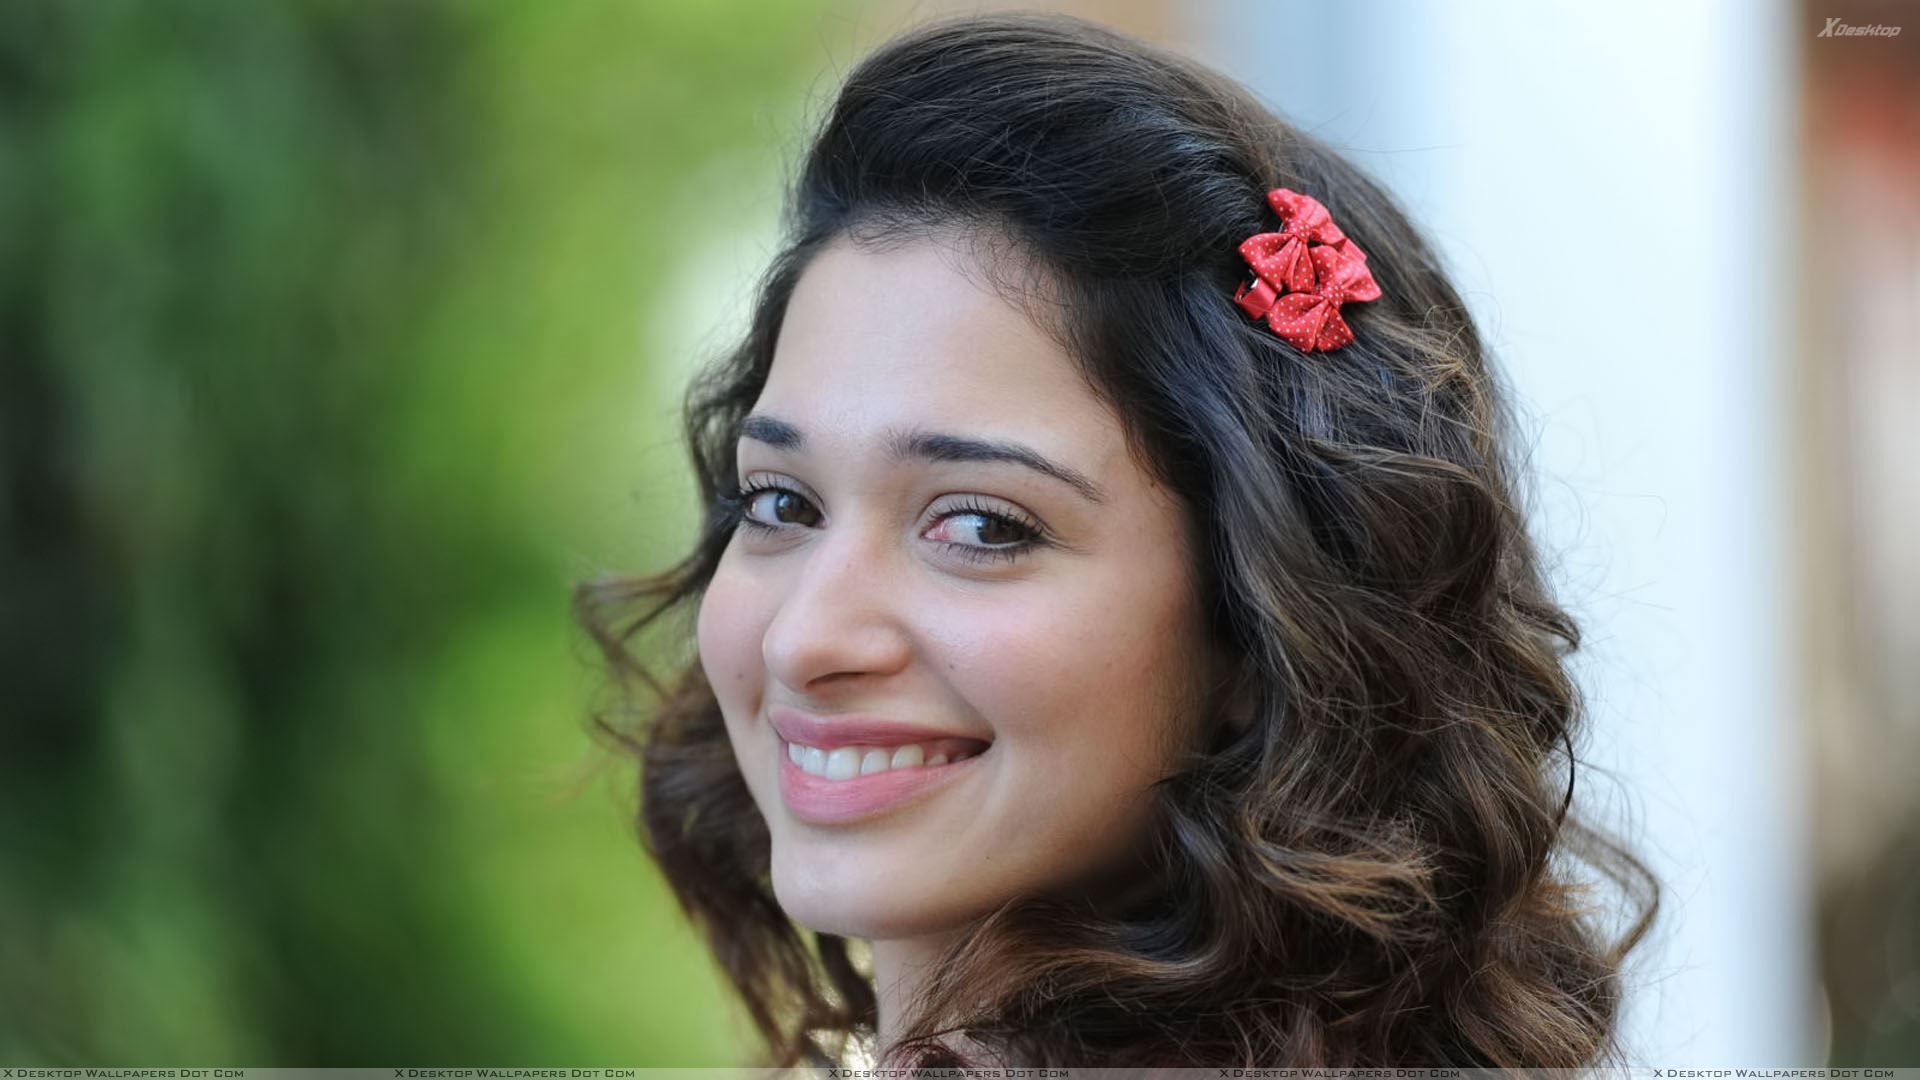 Tamanna Bhatia Wallpapers Photos Images In Hd Android Pinterest